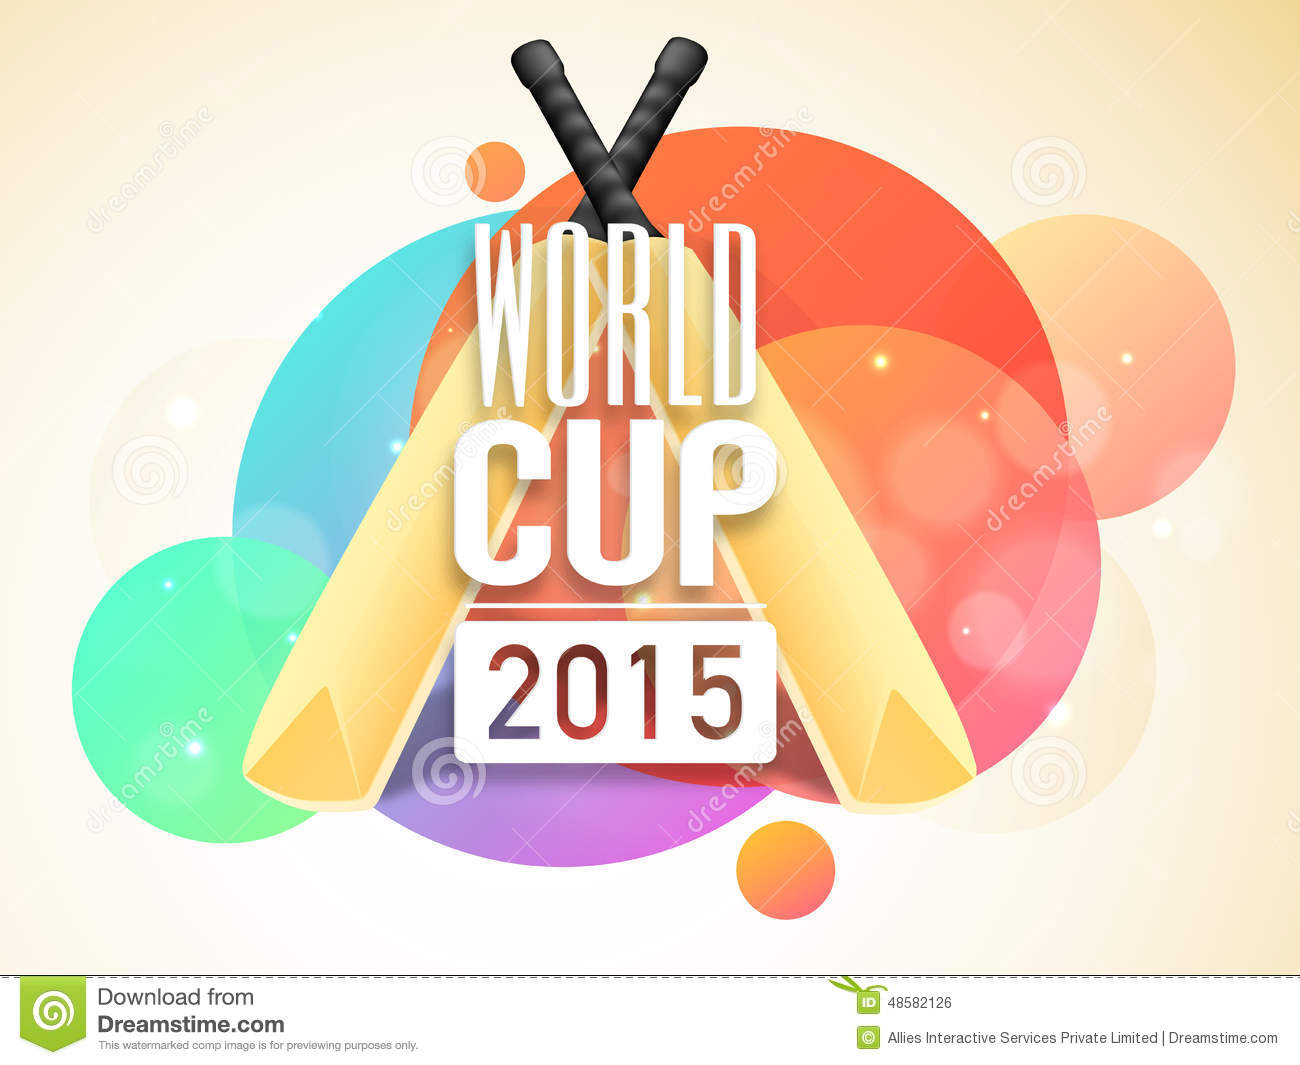 Poster or banner design for world cup 2015 royalty free stock image